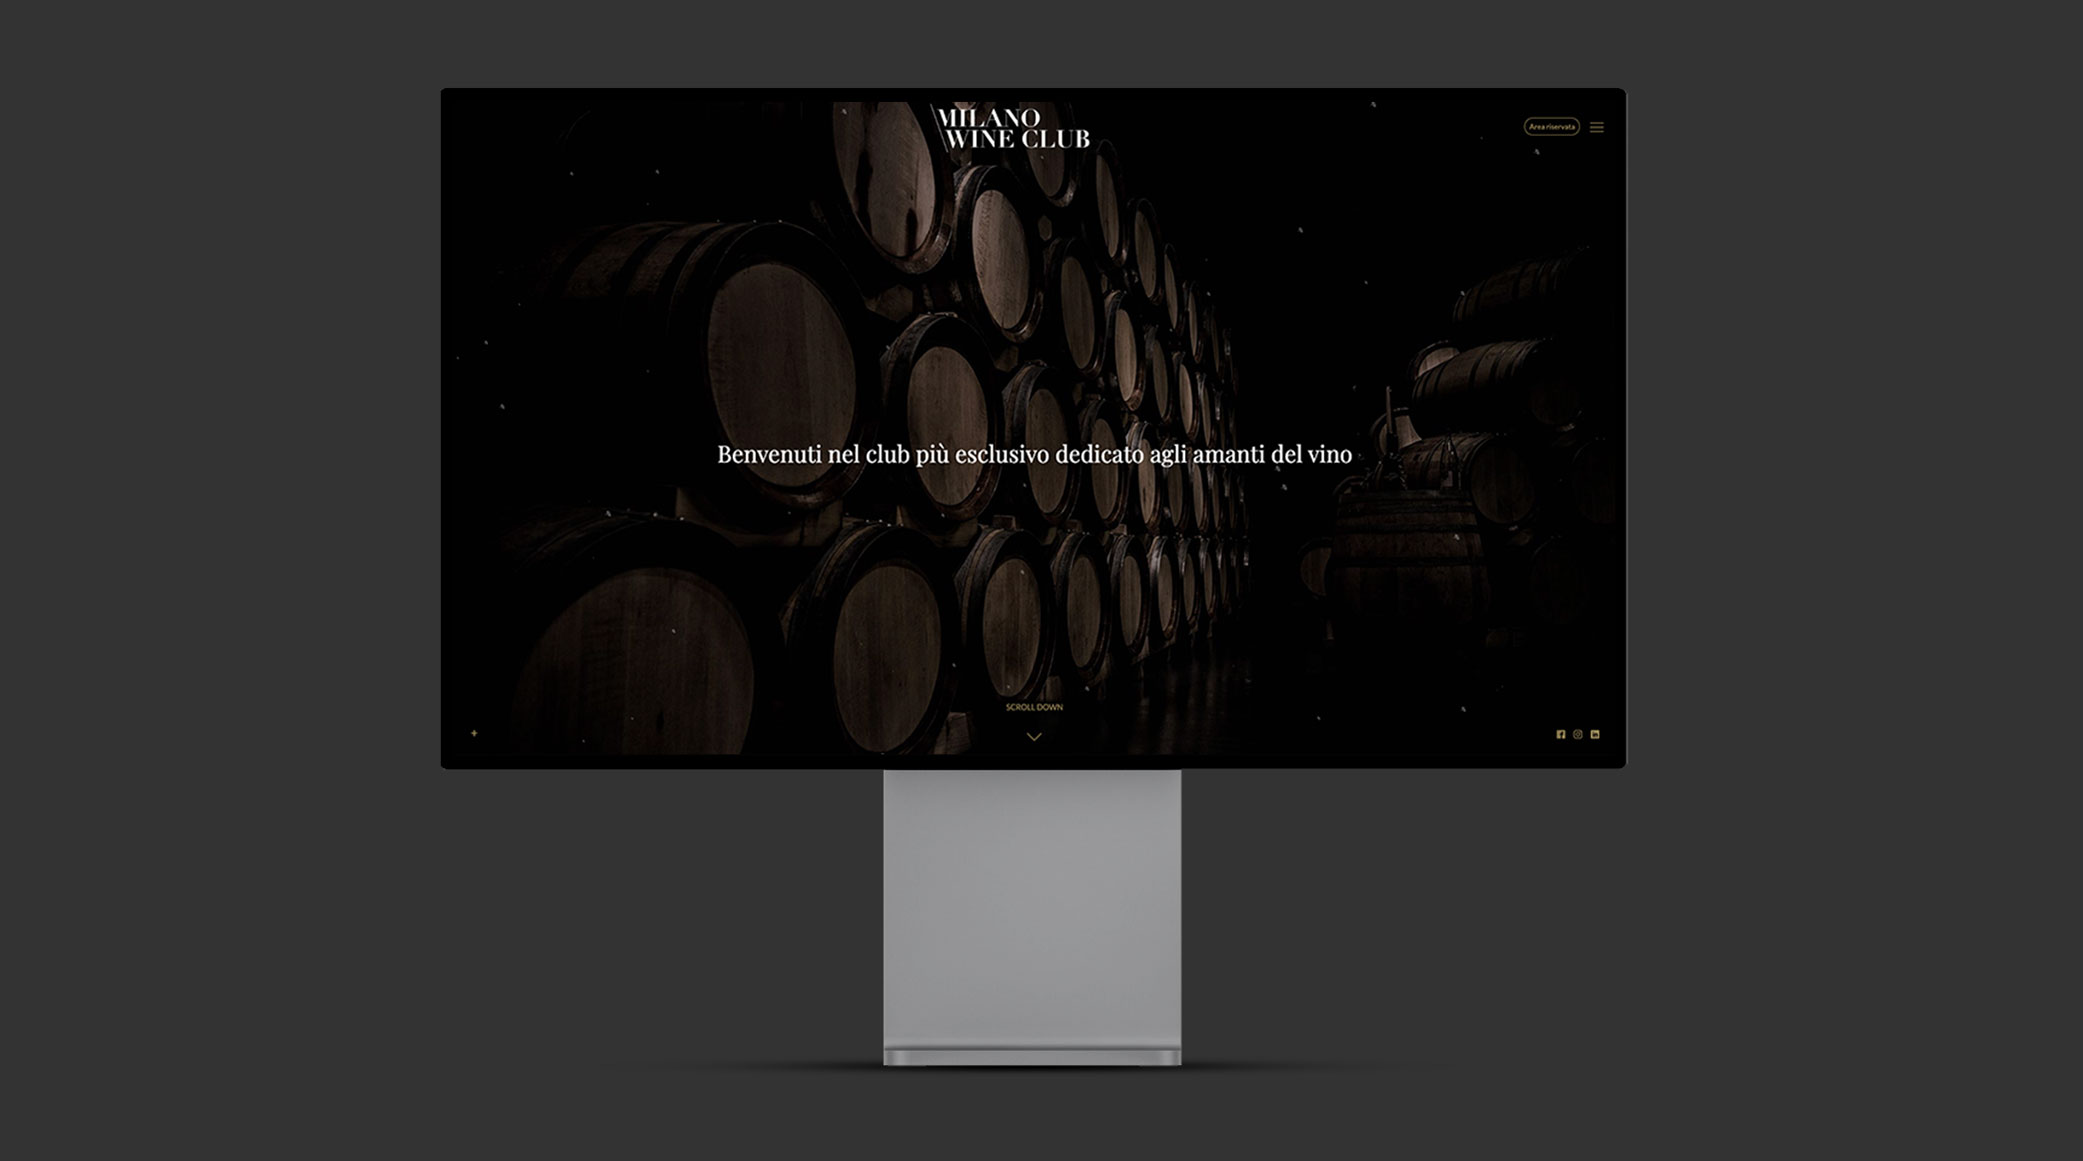 Milano_wine_club_homepage